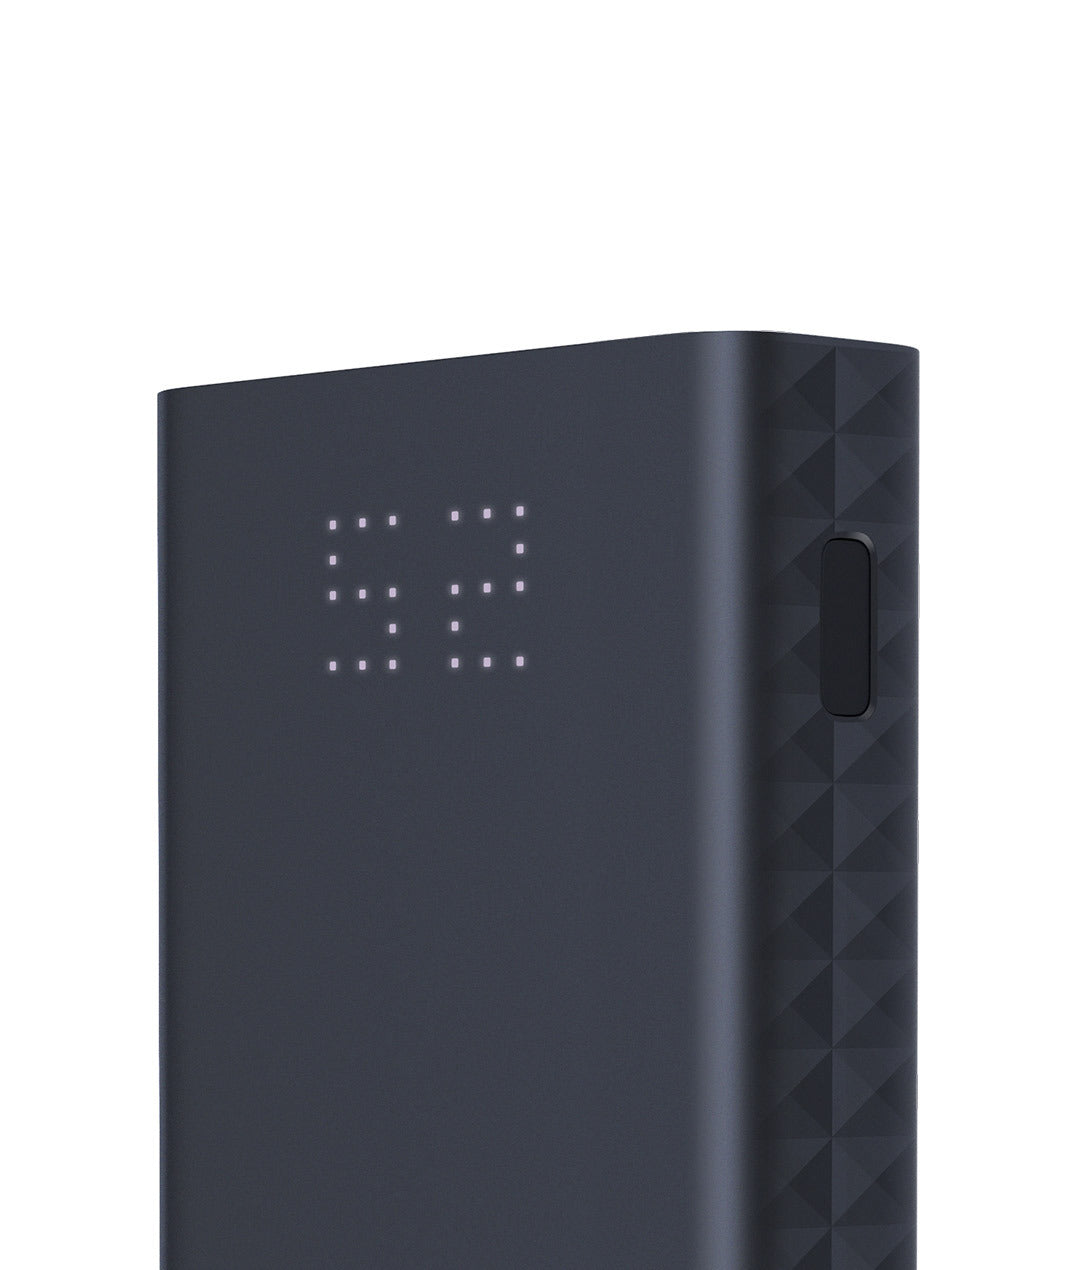 Zmi Aura QB822 27W 20000mAh USB PD Power Bank